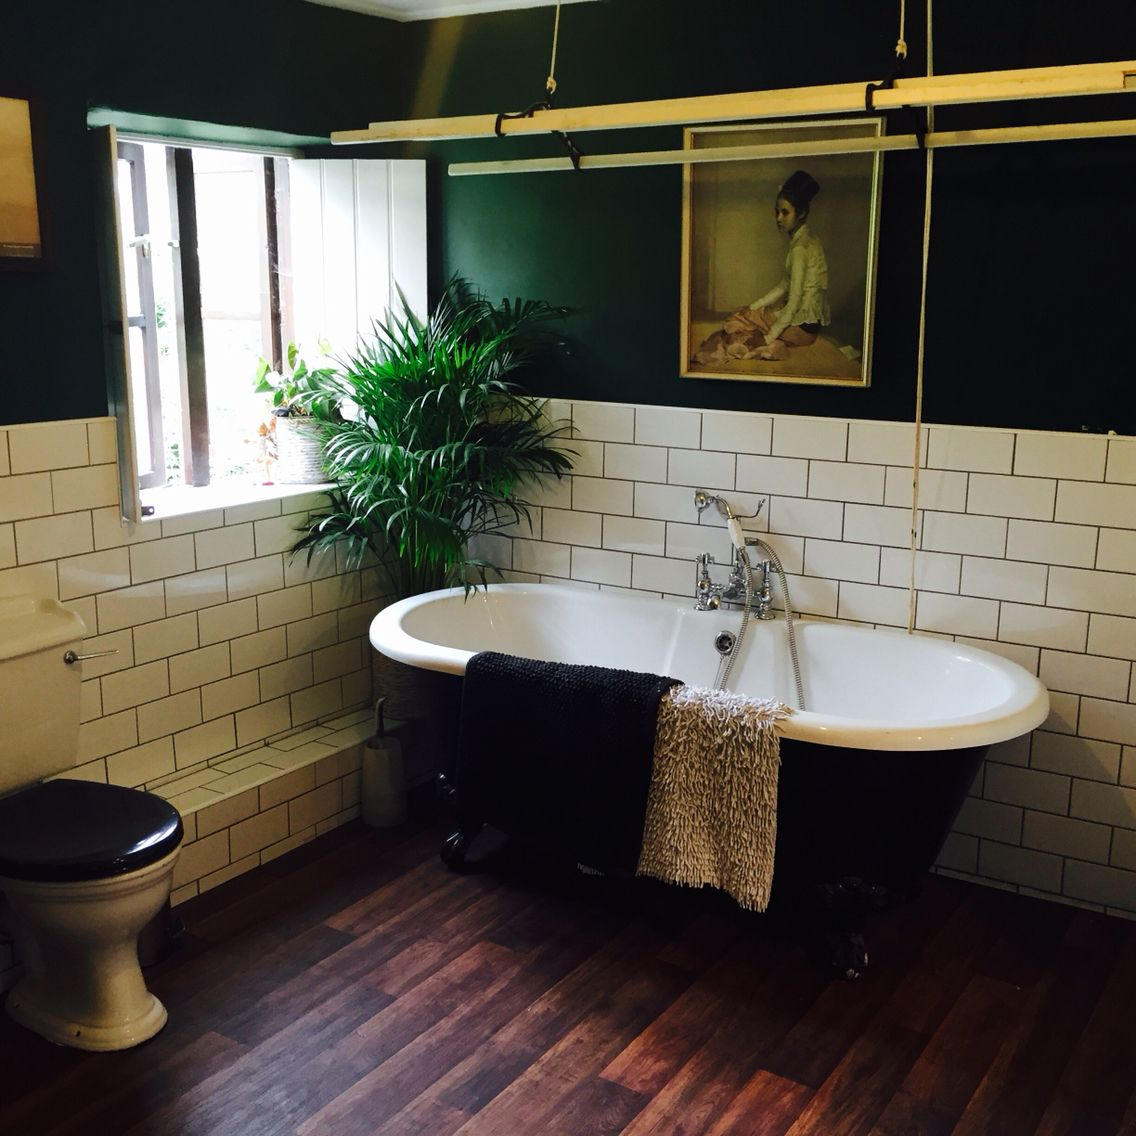 Dark Green Walls Metro Tiles Colonial Ish Bathroom Nearly Finished With Images Green Tile Bathroom Green Bathroom Dark Green Bathrooms